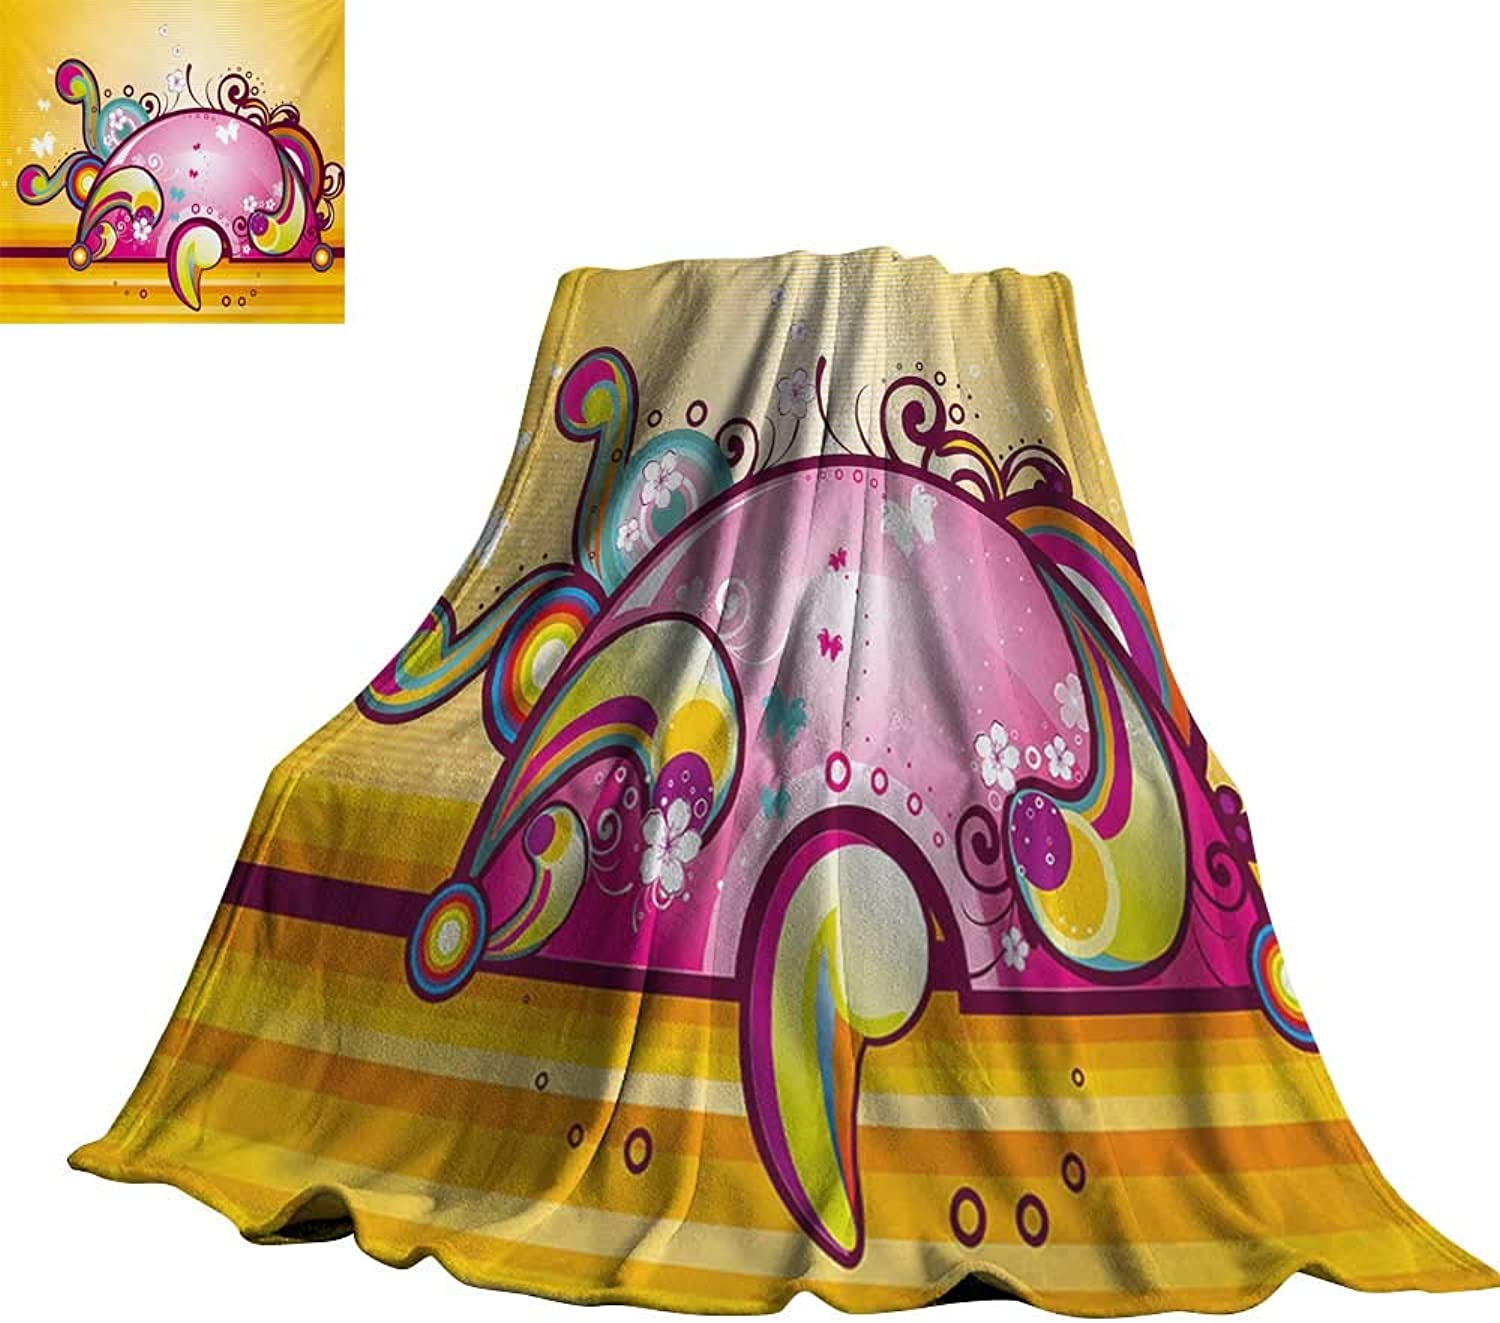 RenteriaDecor Fantasy,Throws Cute colorful Shapes with Spiral Swirled Lines Vibrant Girls Kids Nursery Design for Couch Bed Living Room 70 x50